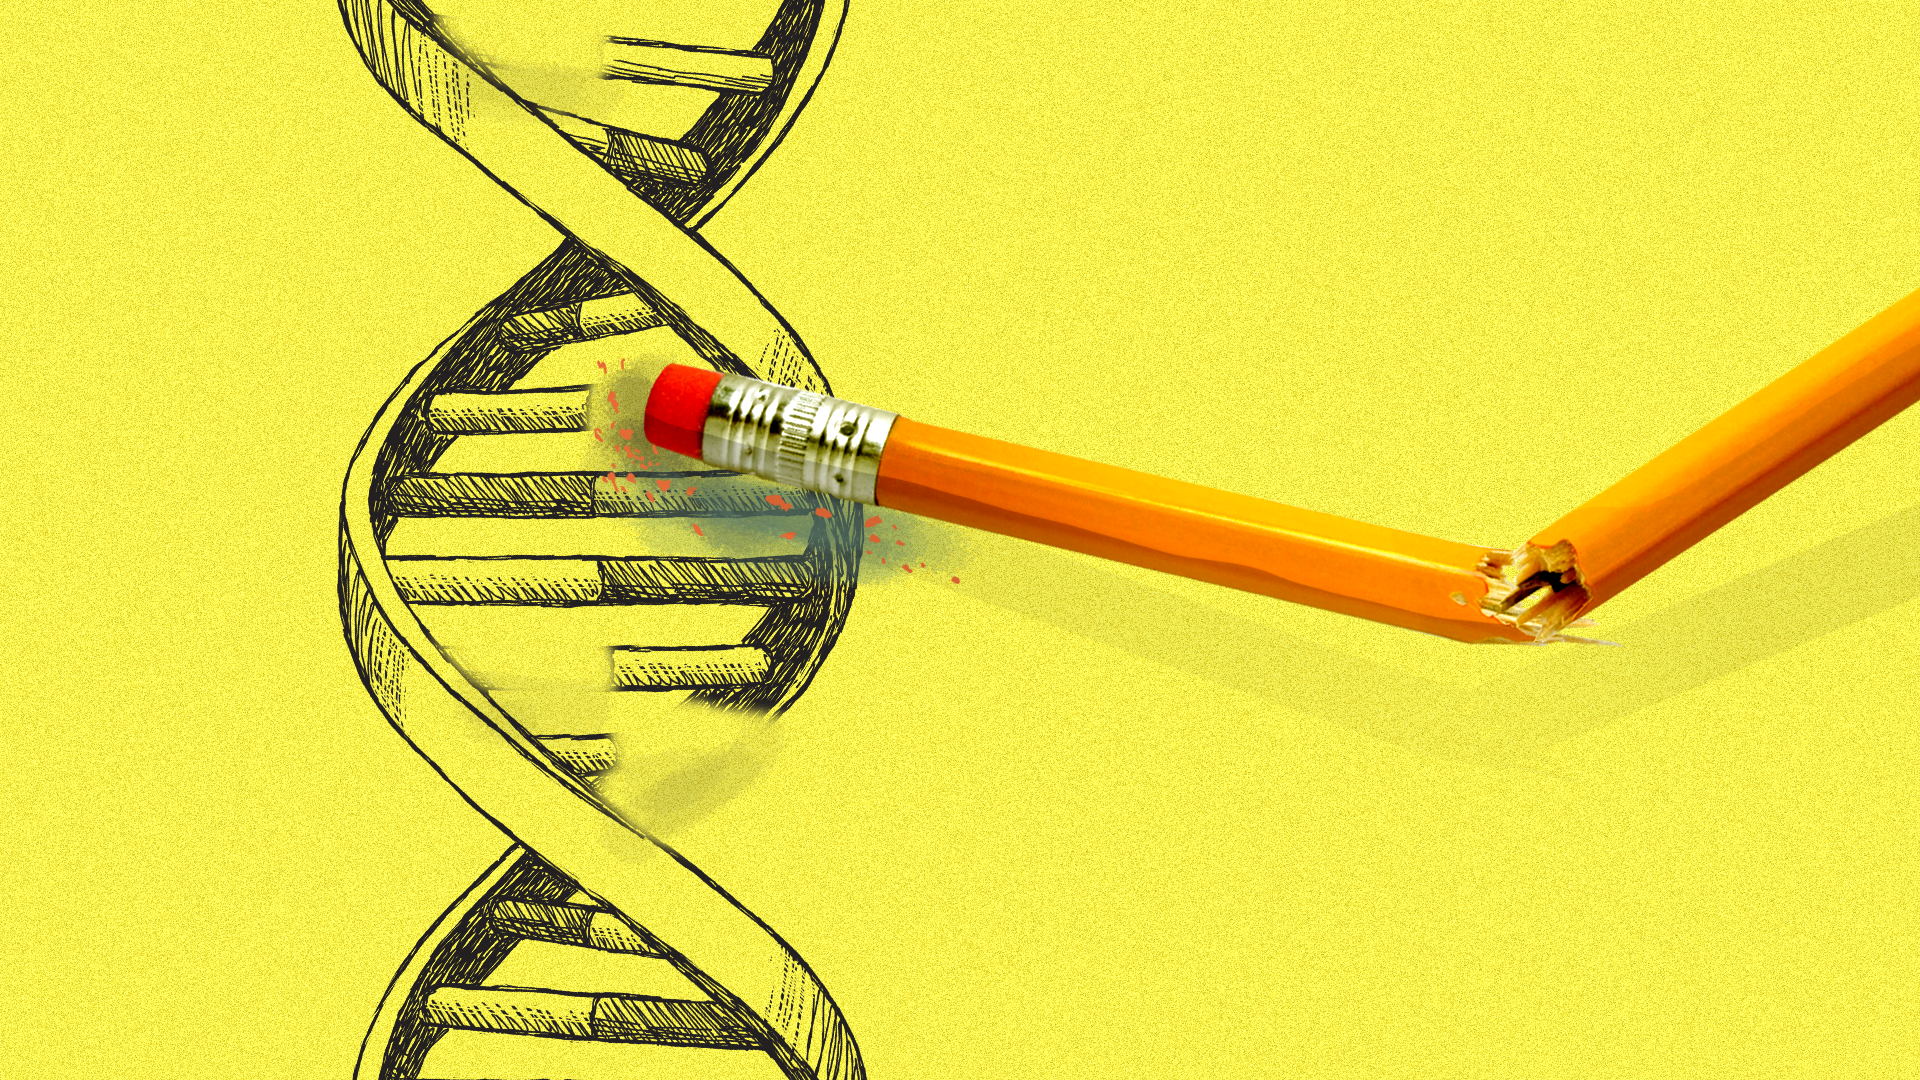 Illustration of breaking pencil erasing gene sequence.